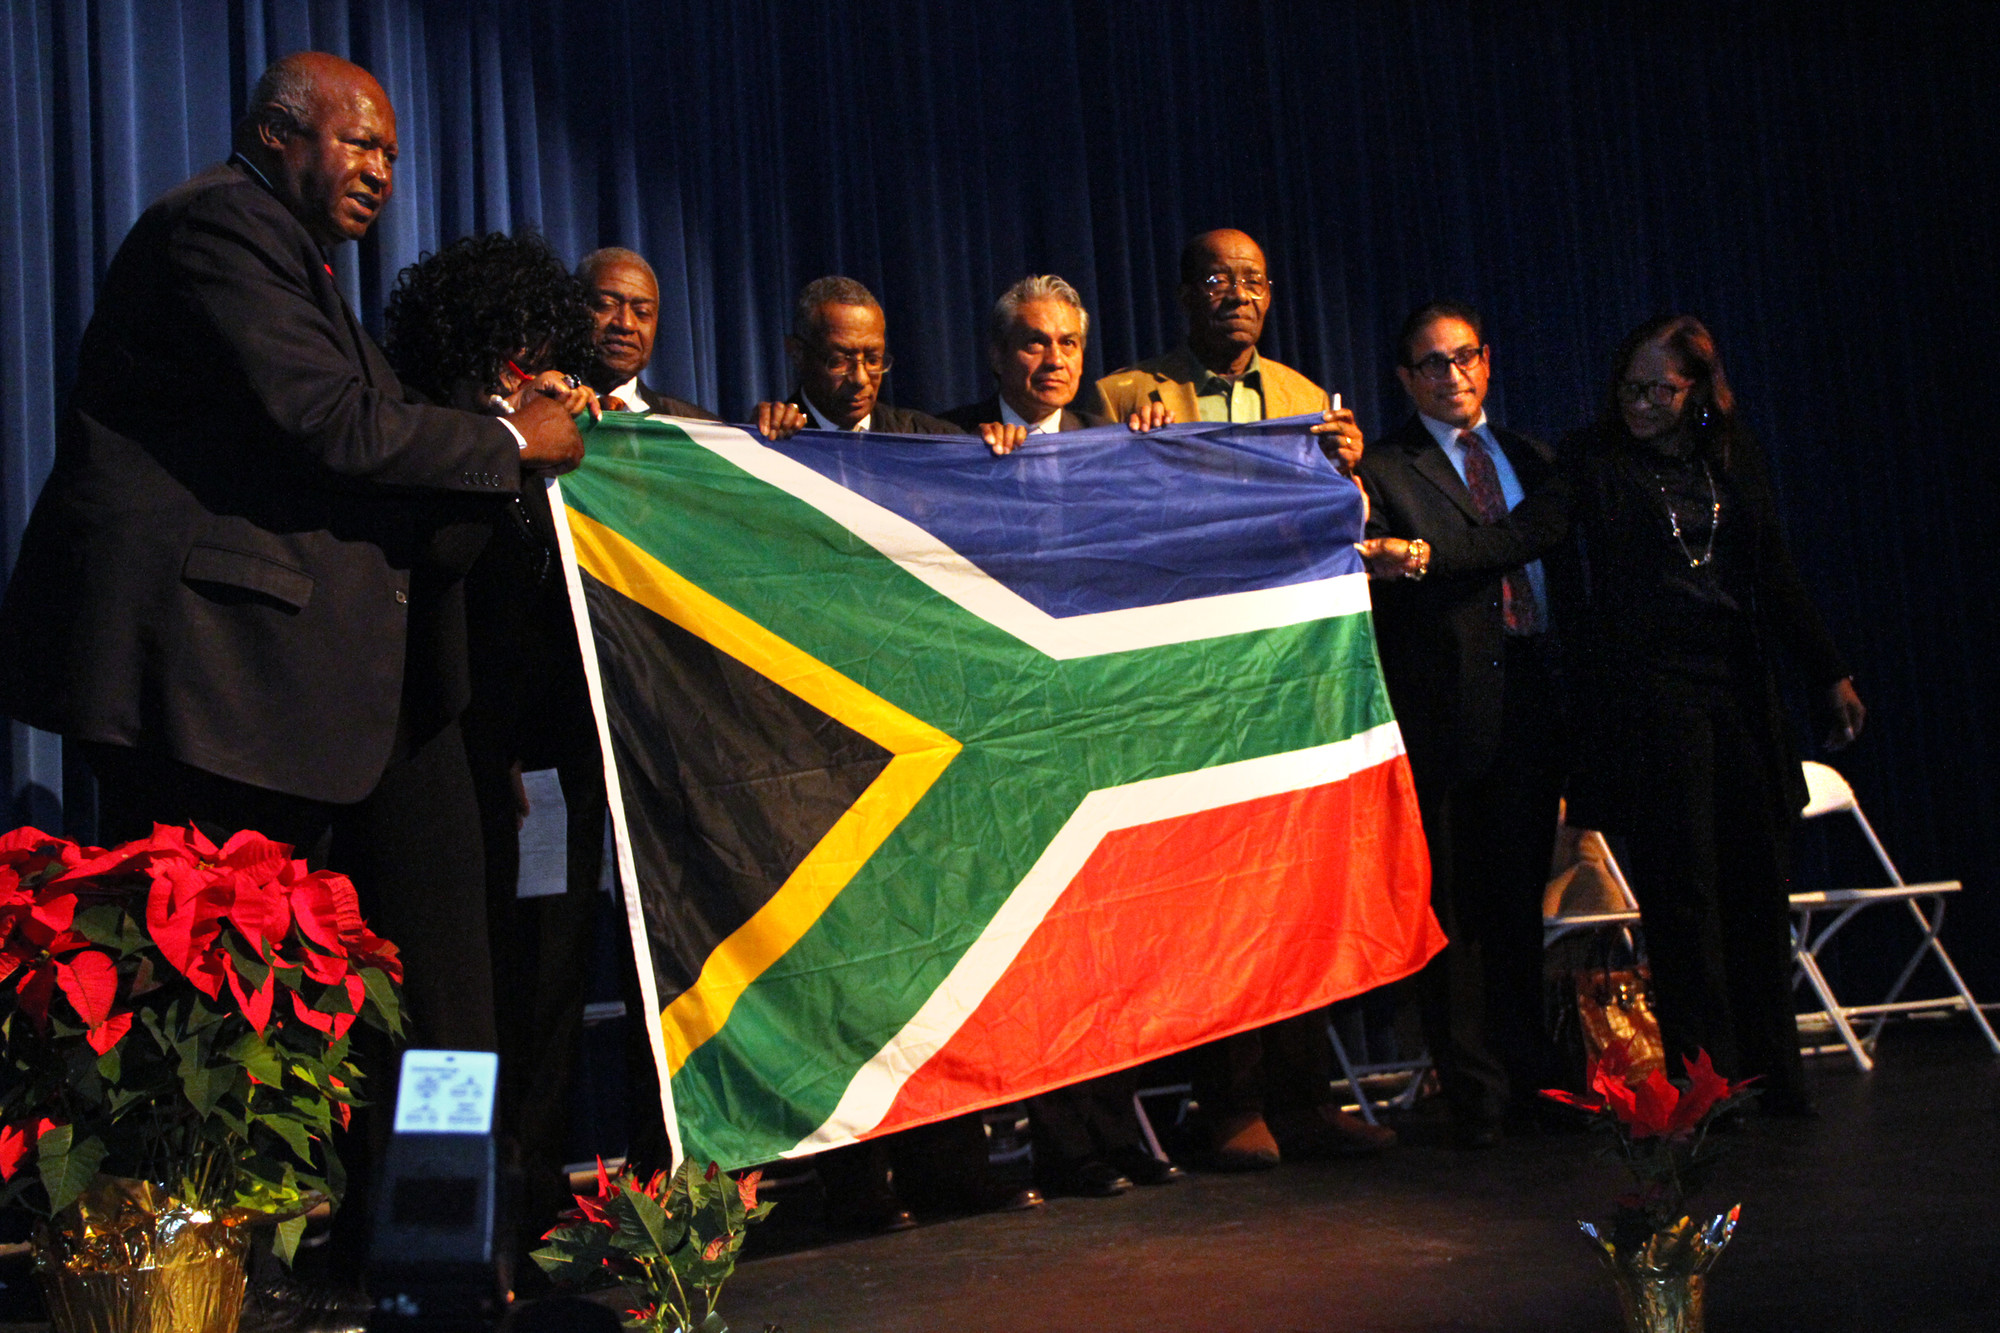 Former Hempstead Mayor James Garner, left, displayed a South African flag he said Mandela gave him. Garner was a delegate to the United Nation's 2002 World Summit on Sustainable Development in Johannesburg.